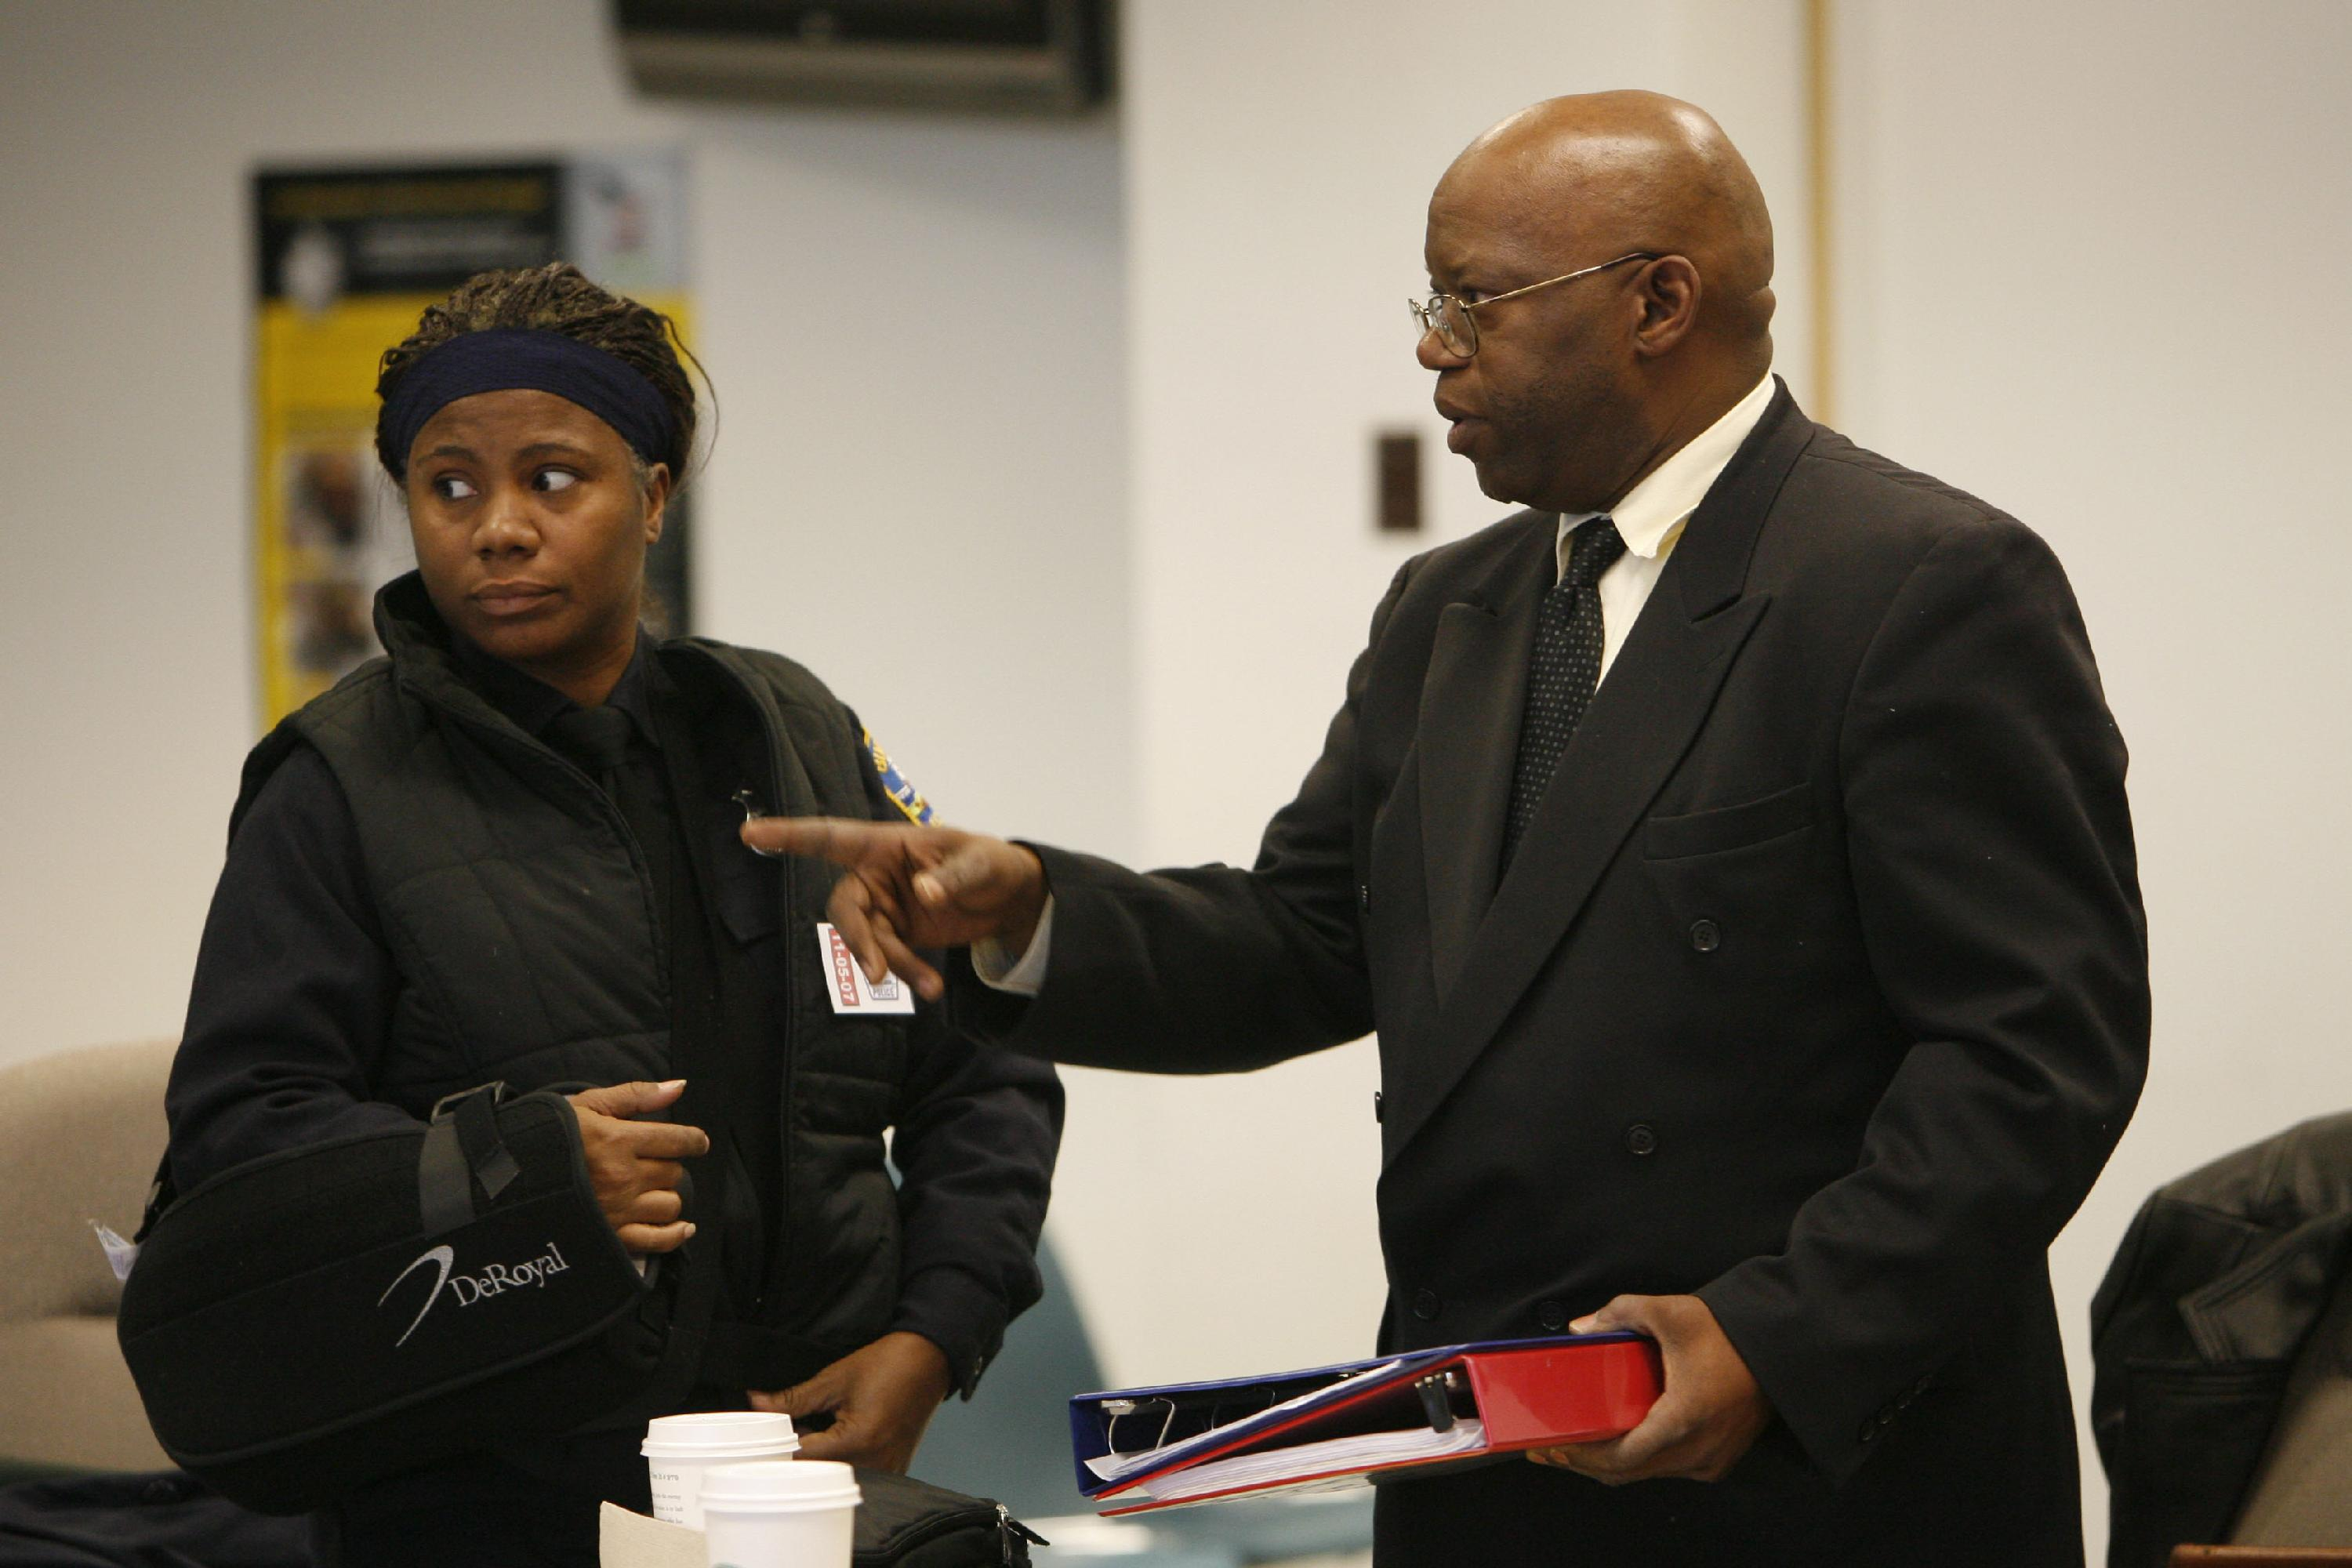 Cariol Horne talks with one of her lawyers in 2007. (Buffalo News photo/Derek Gee)